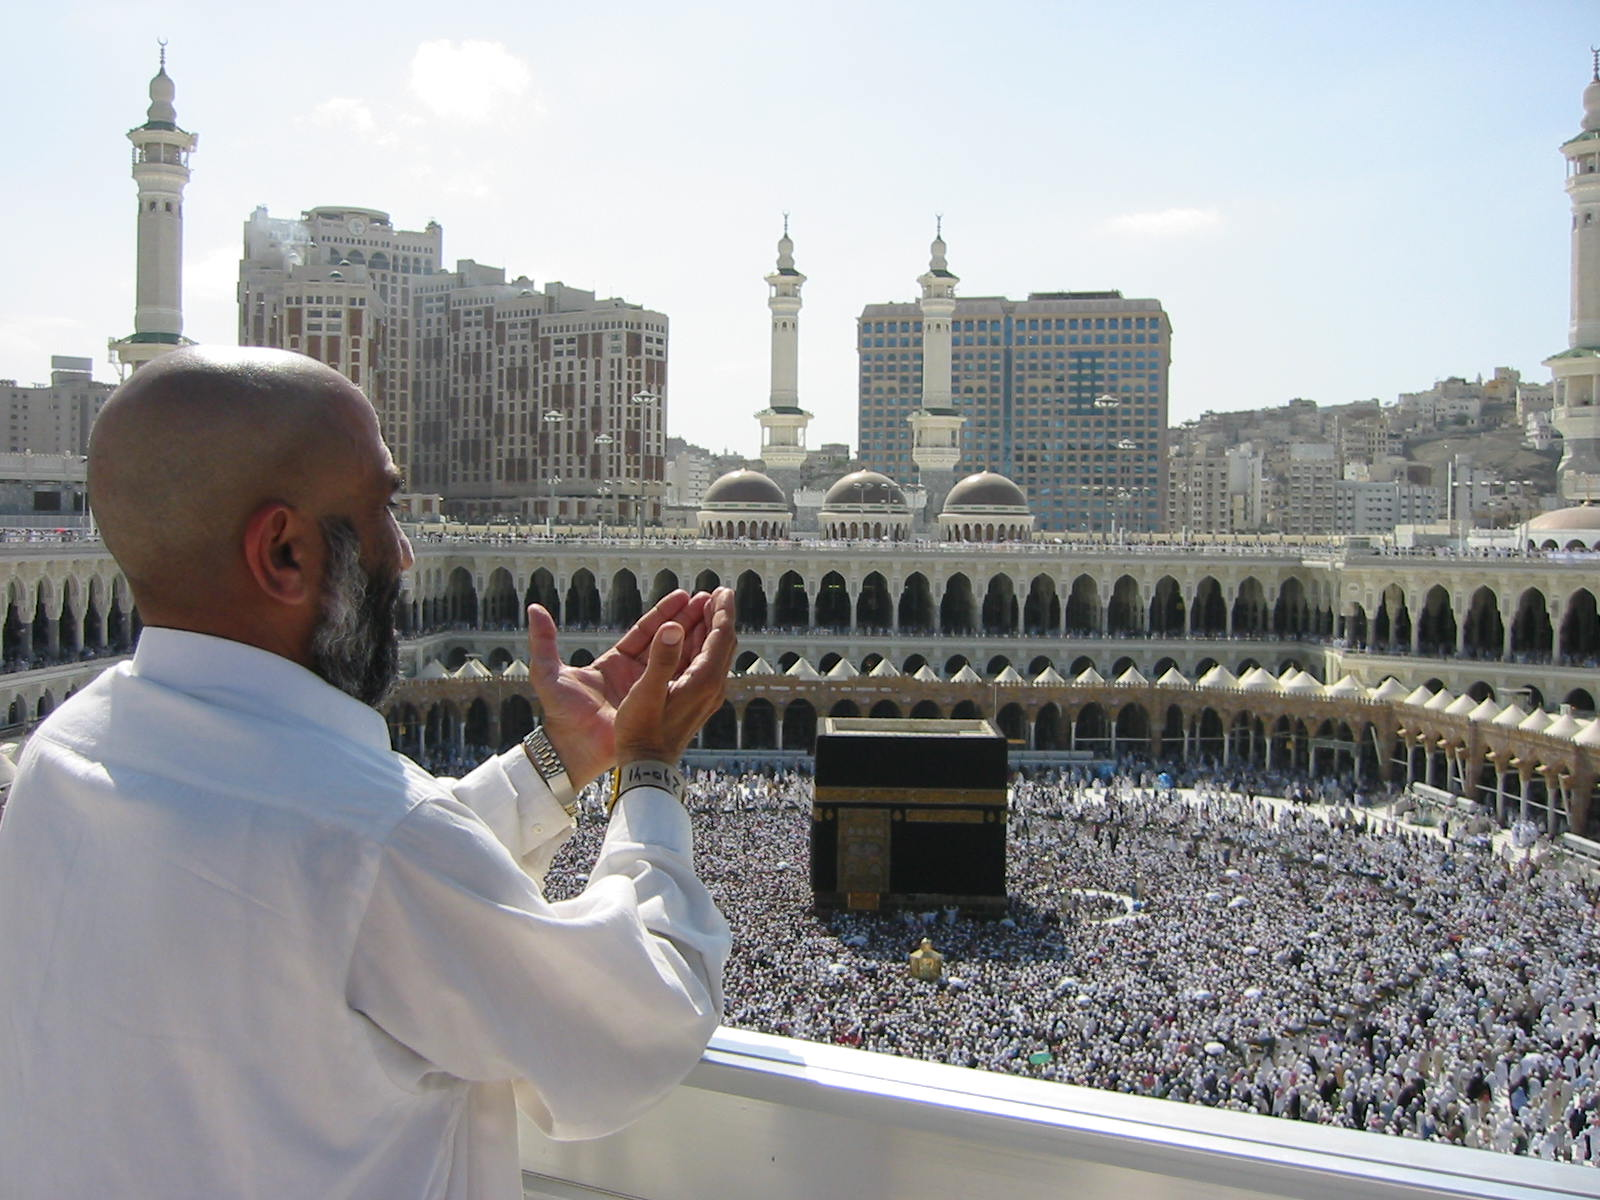 Muslim worshippers seek green inspiration at annual Haj pilgrimage